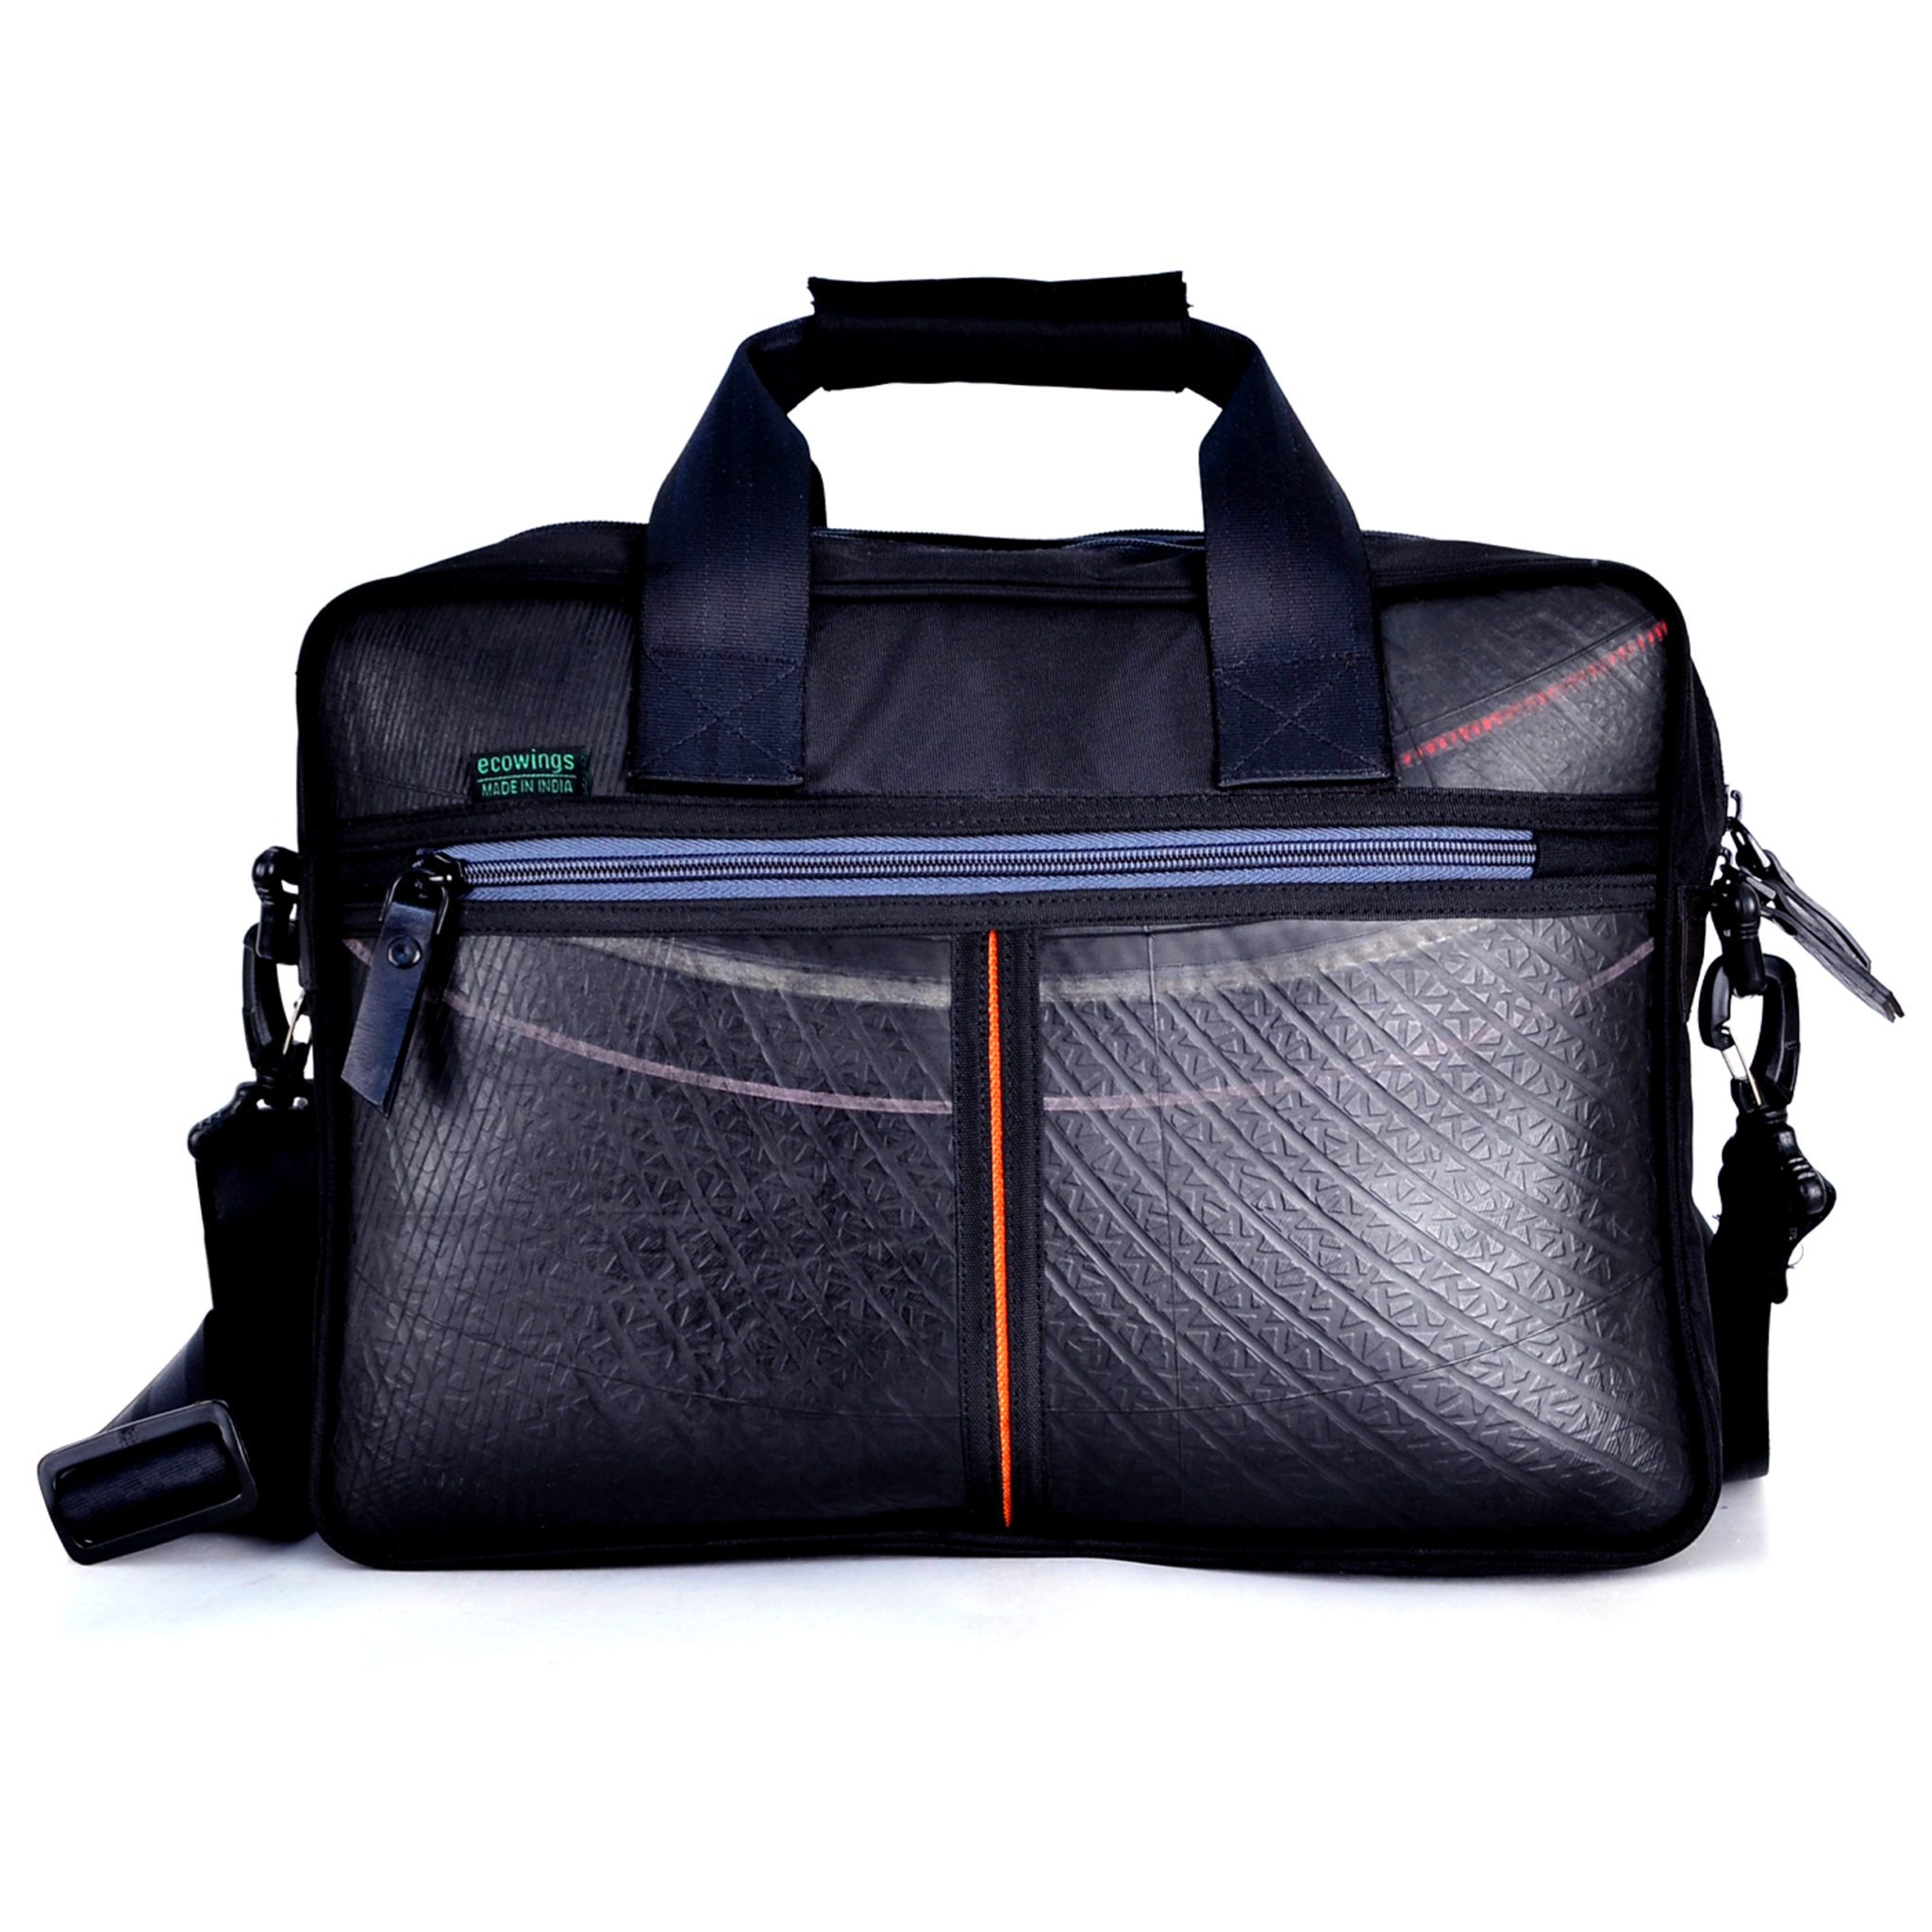 Things to look for before buying leather laptop bags: